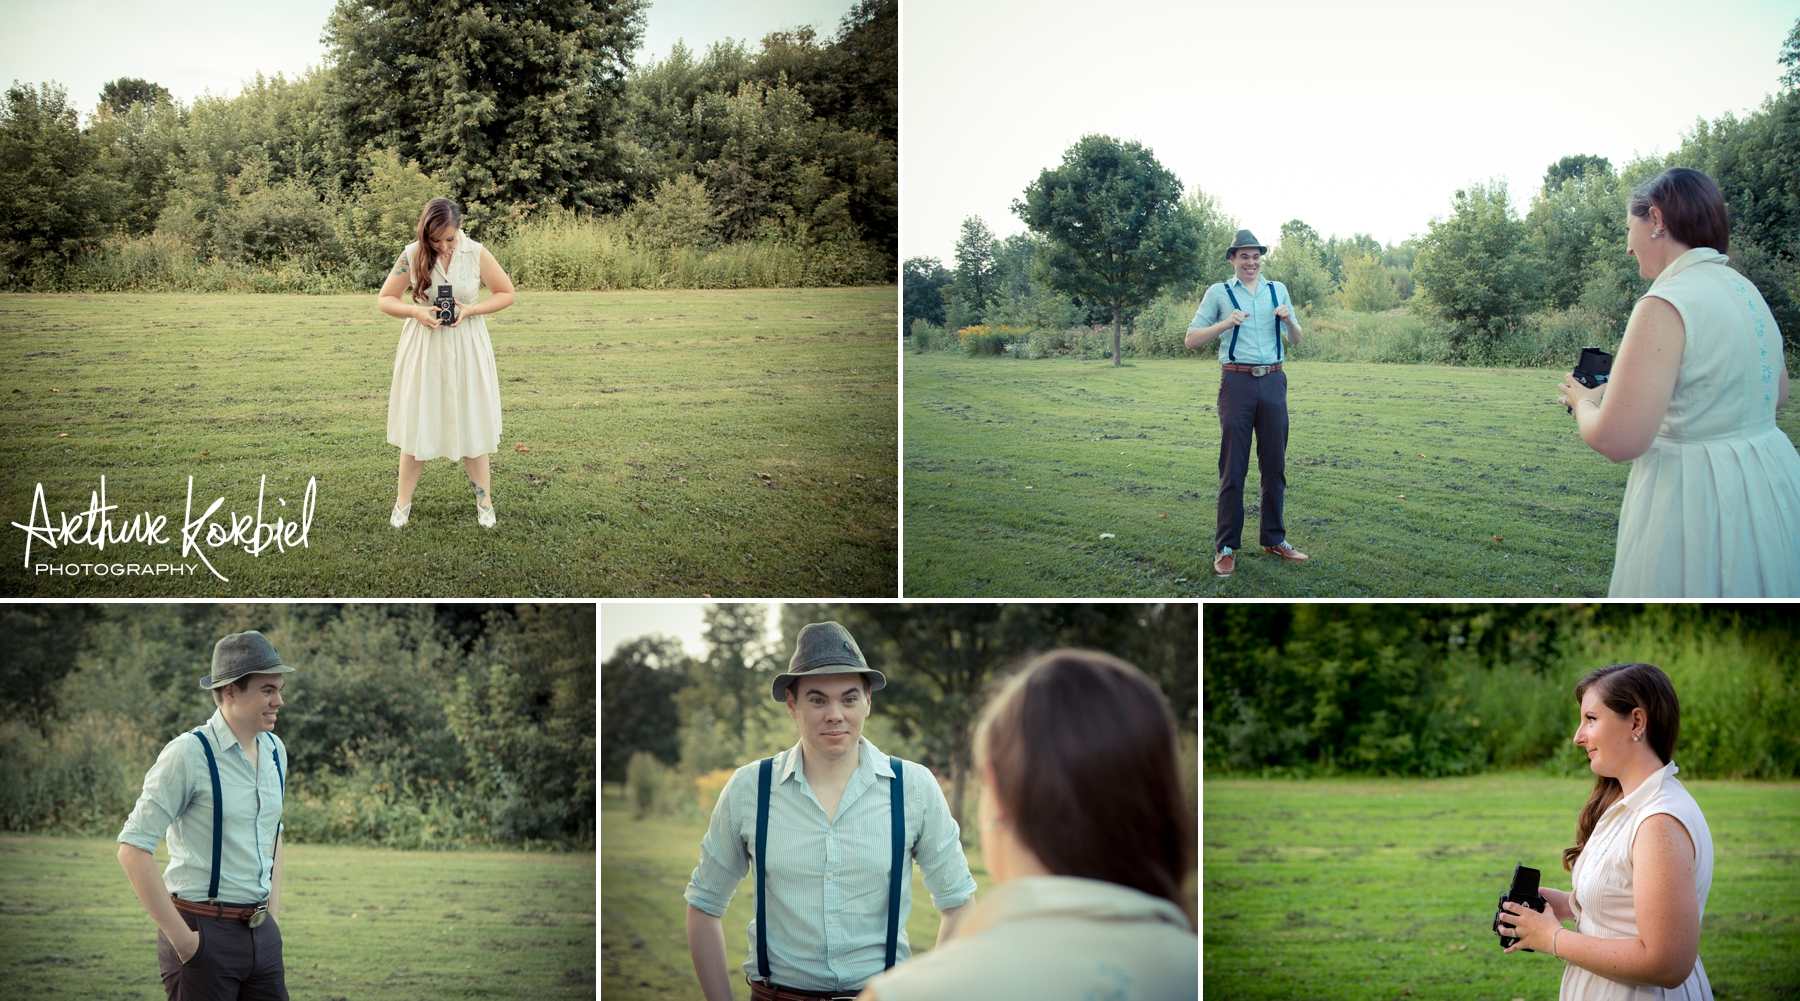 Arthur Korbiel Photography - London Engagement Wedding Photographer - Vintage - Bag Lady Variety - Gibbons Park_012.jpg